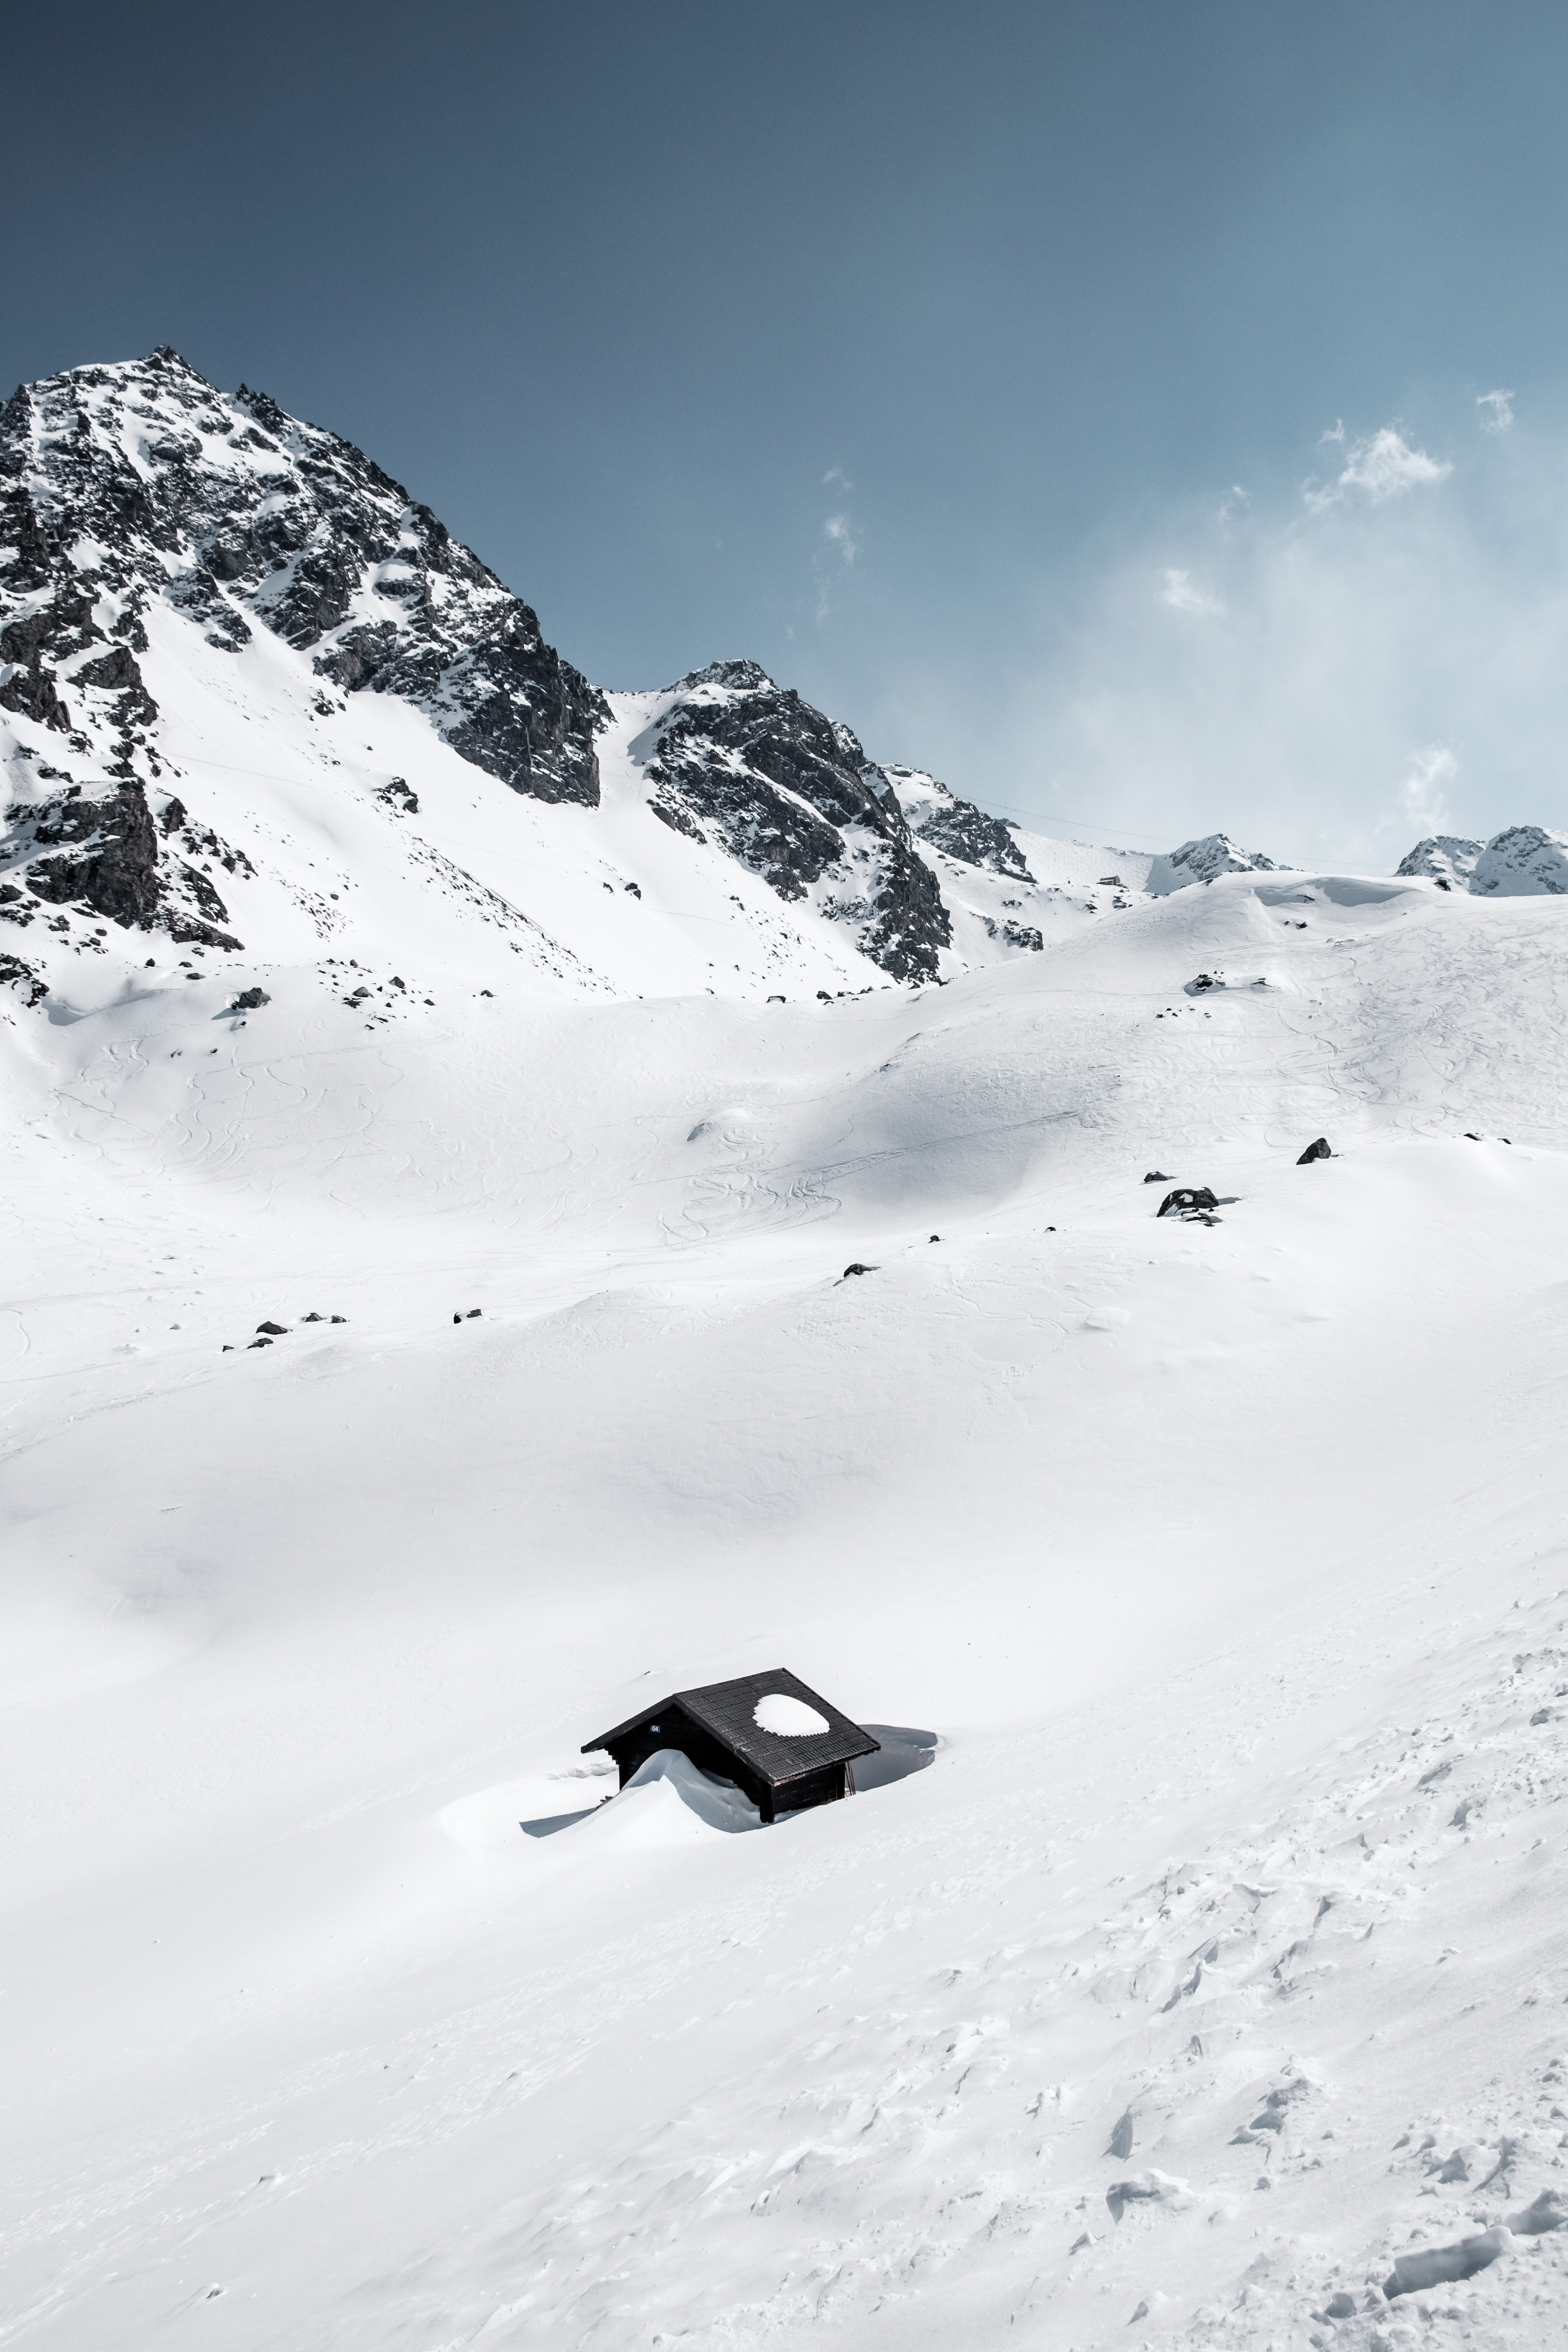 Snowy rocky mountains and hill ski trails in Verbier, Switzerland